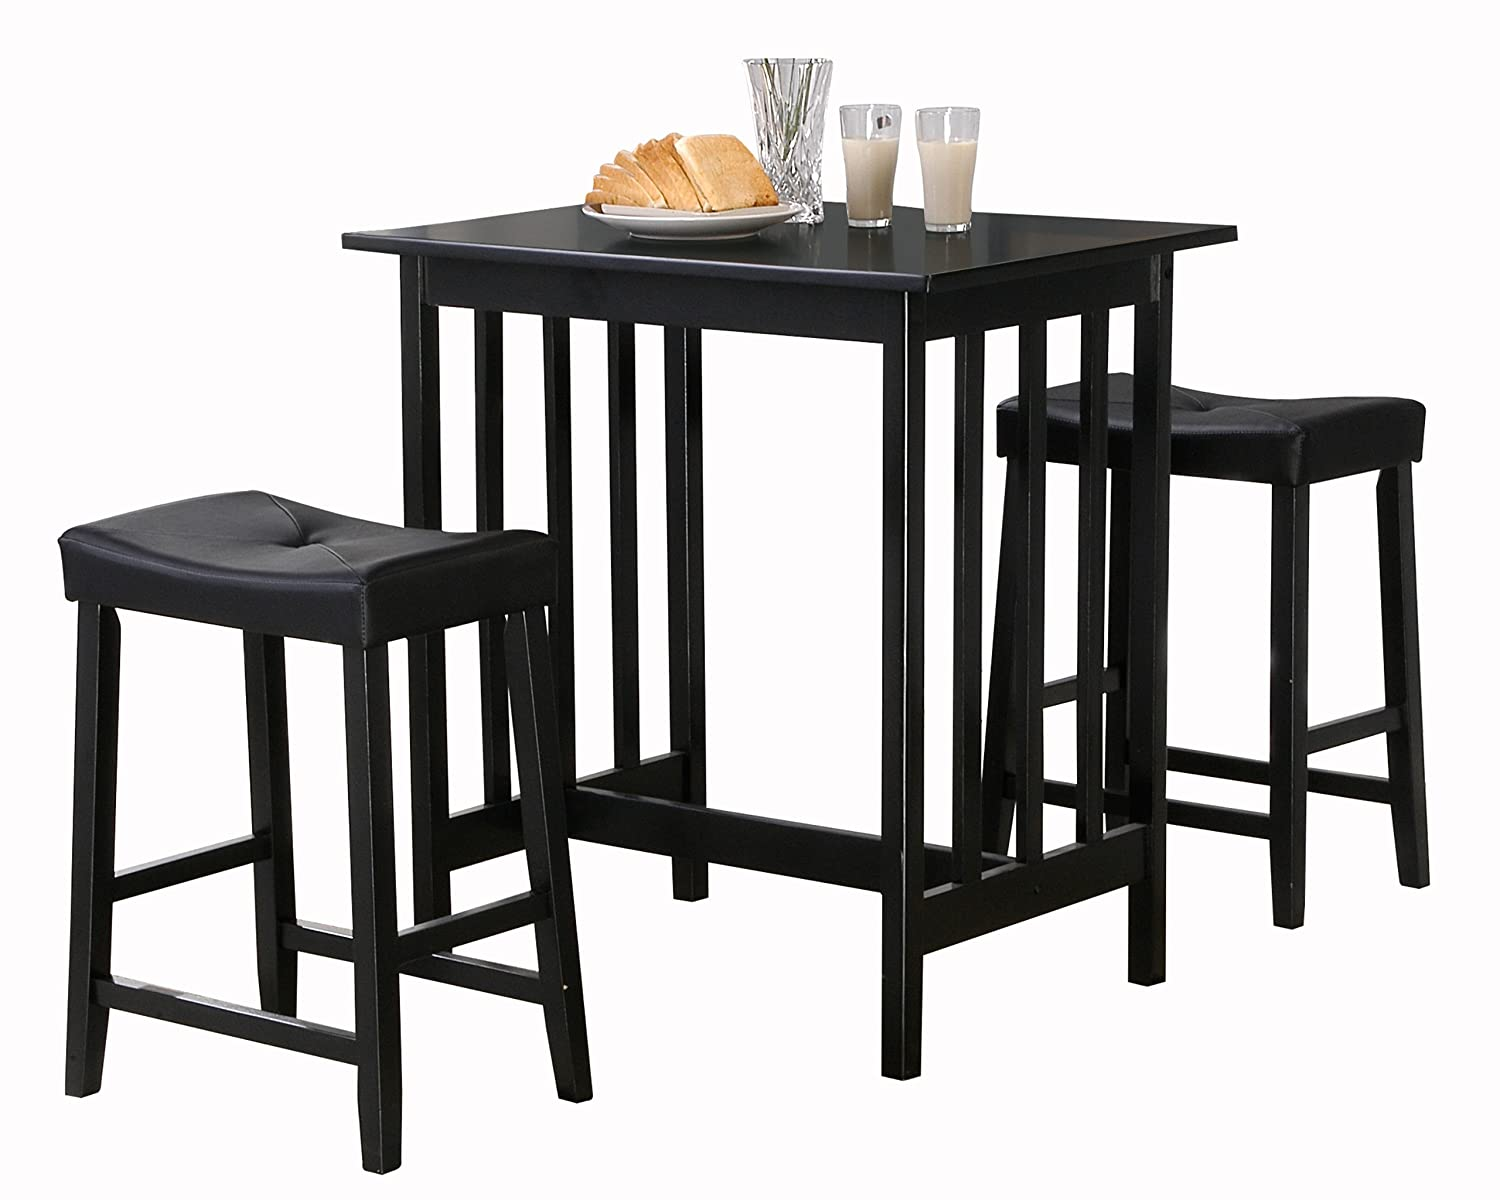 Kitchen table and stools stunning kitchen tables and chairs for the modern home Home bar furniture amazon